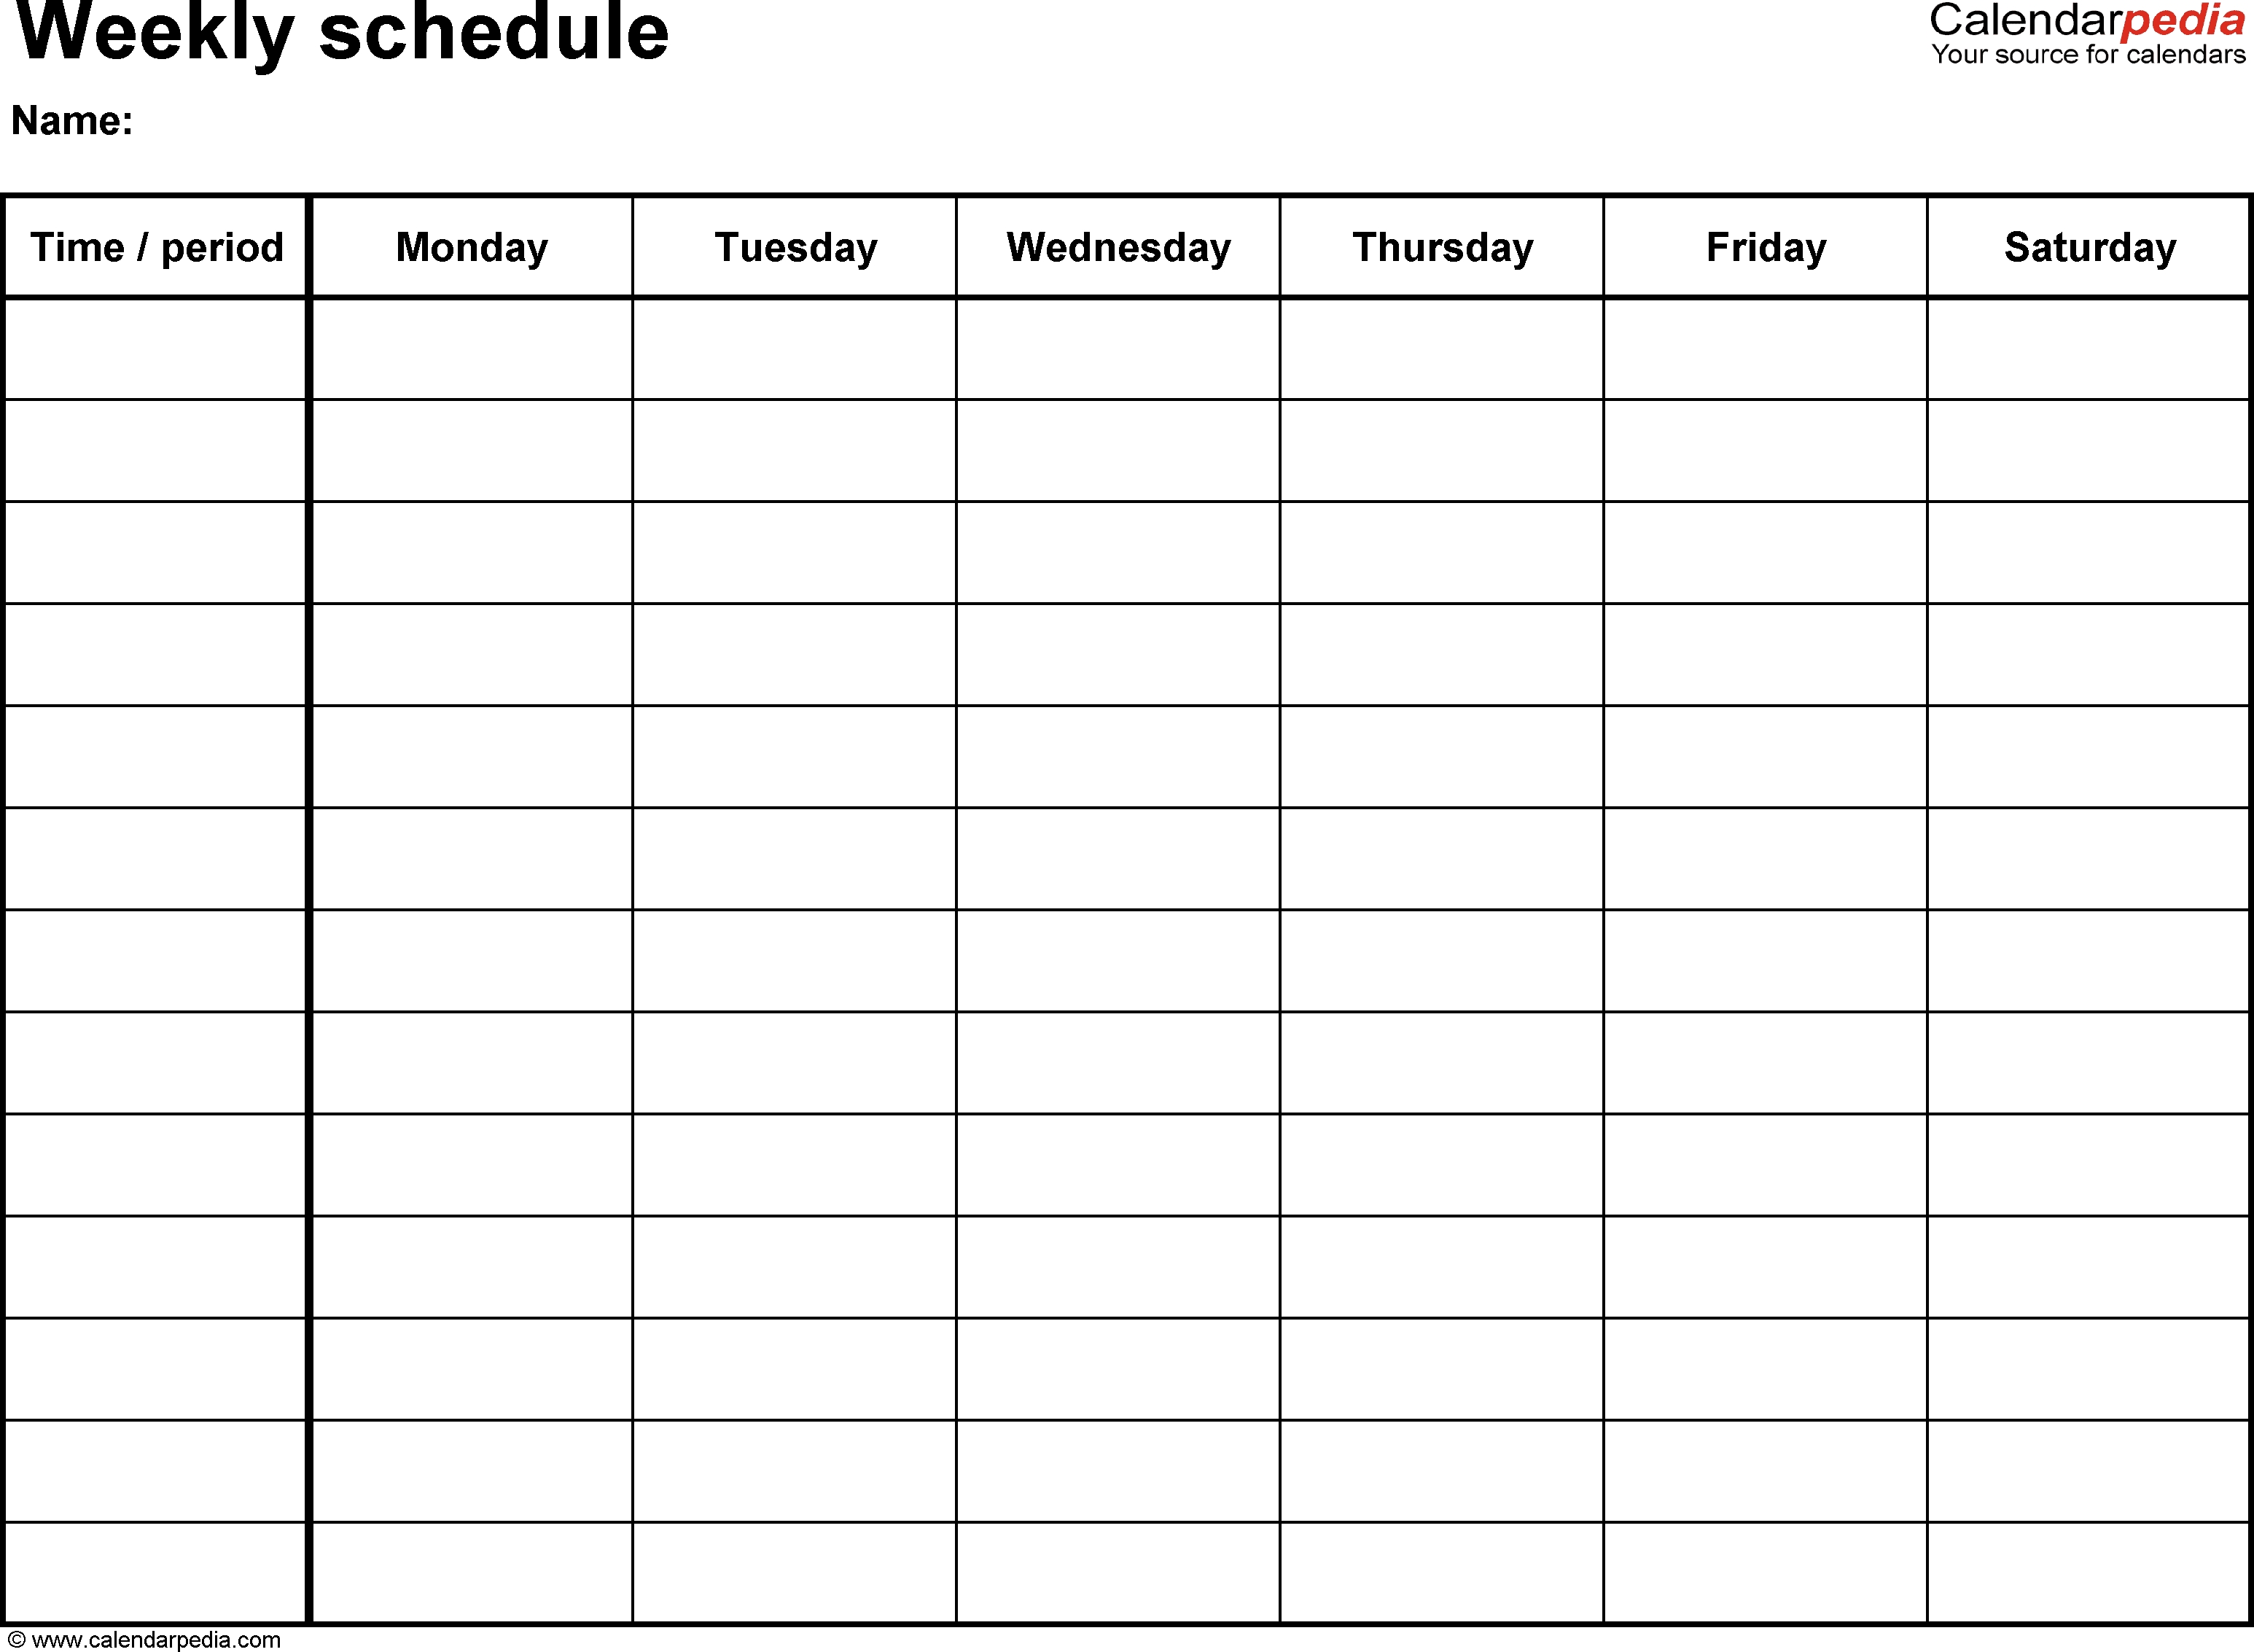 Free Weekly Schedule Templates For Word - 18 Templates in Calendar Day Planner Templates Free